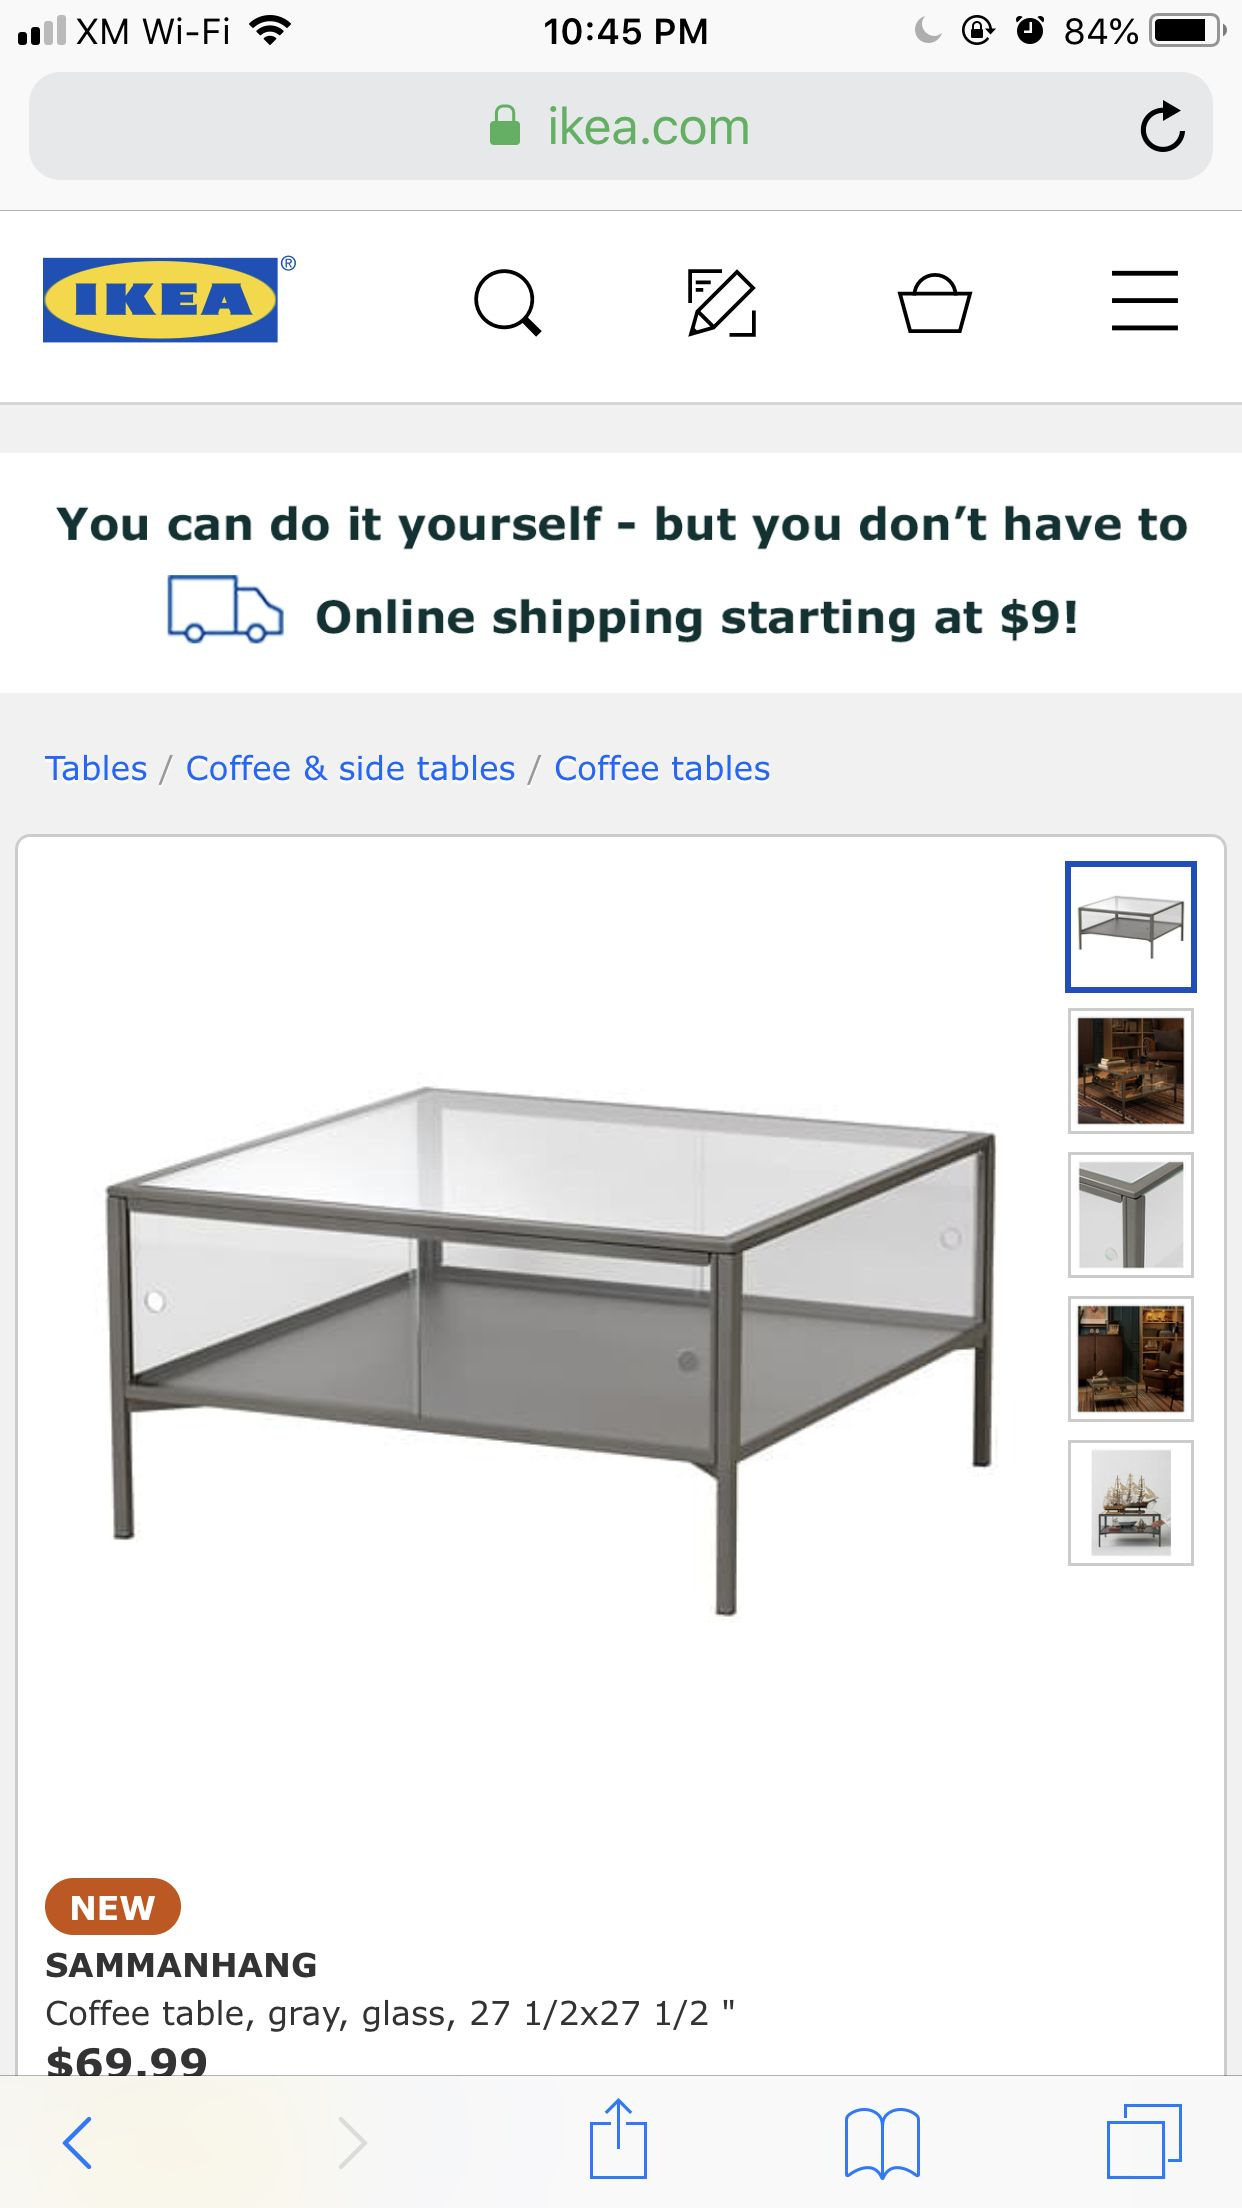 Pin By Jasmine Hotte On House List Coffee Table House Ikea [ 2208 x 1242 Pixel ]